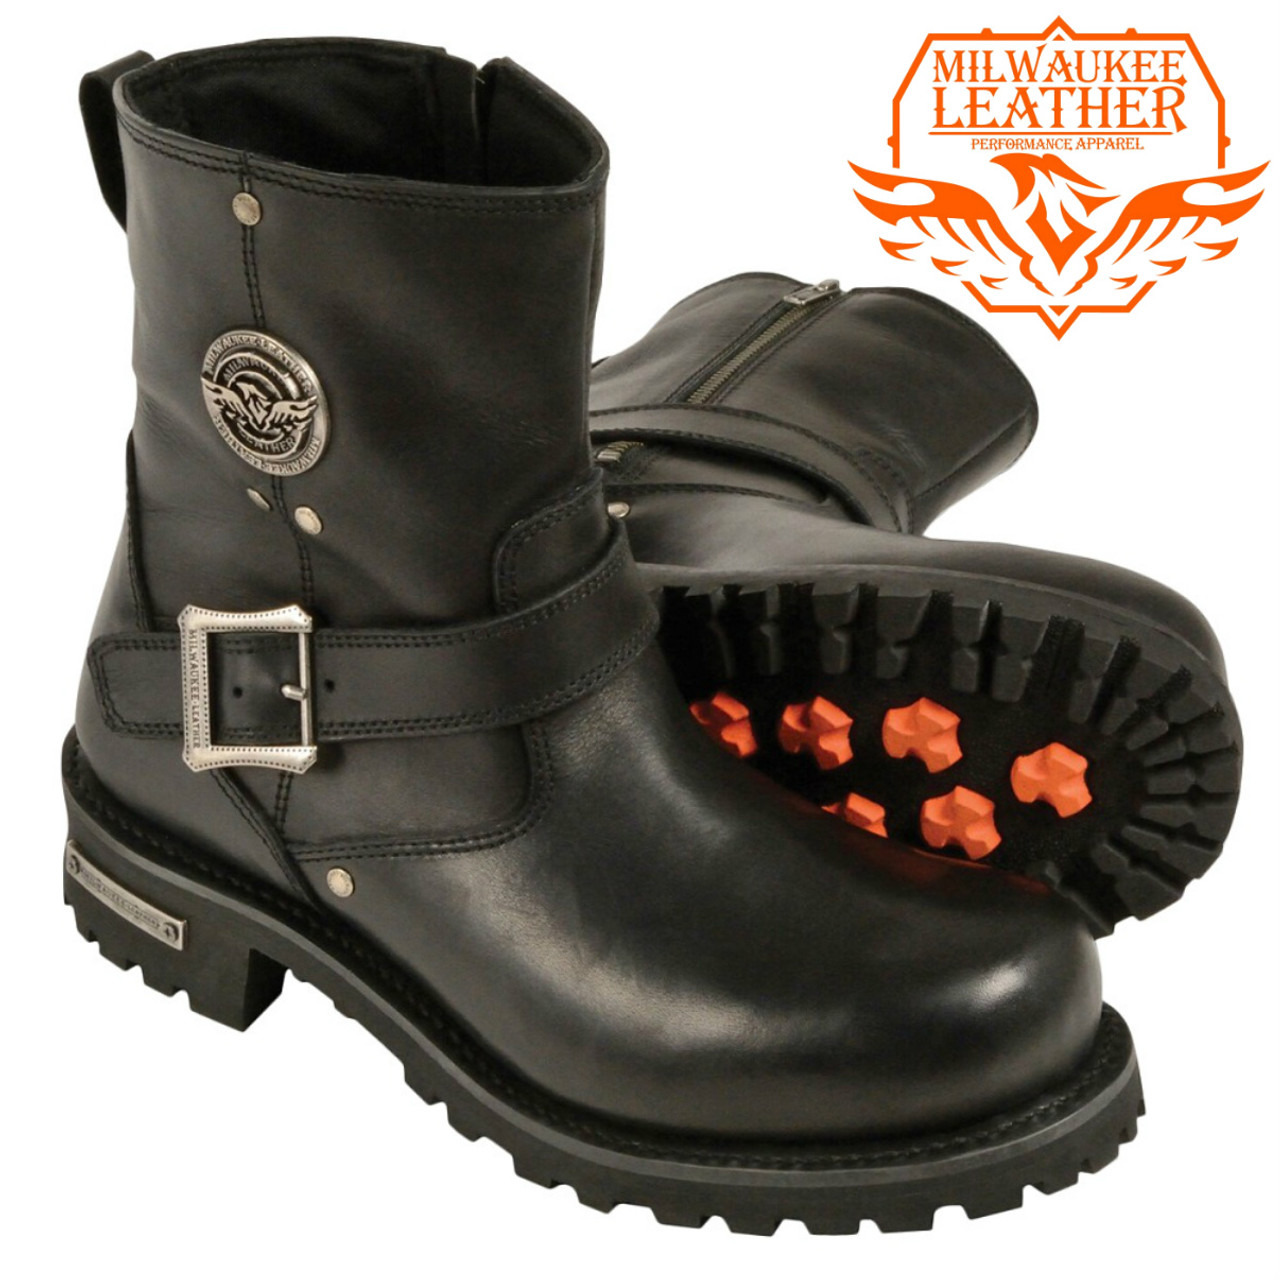 MEN'S MOTORCYCLE RIDING BOOTS, CLASSIC